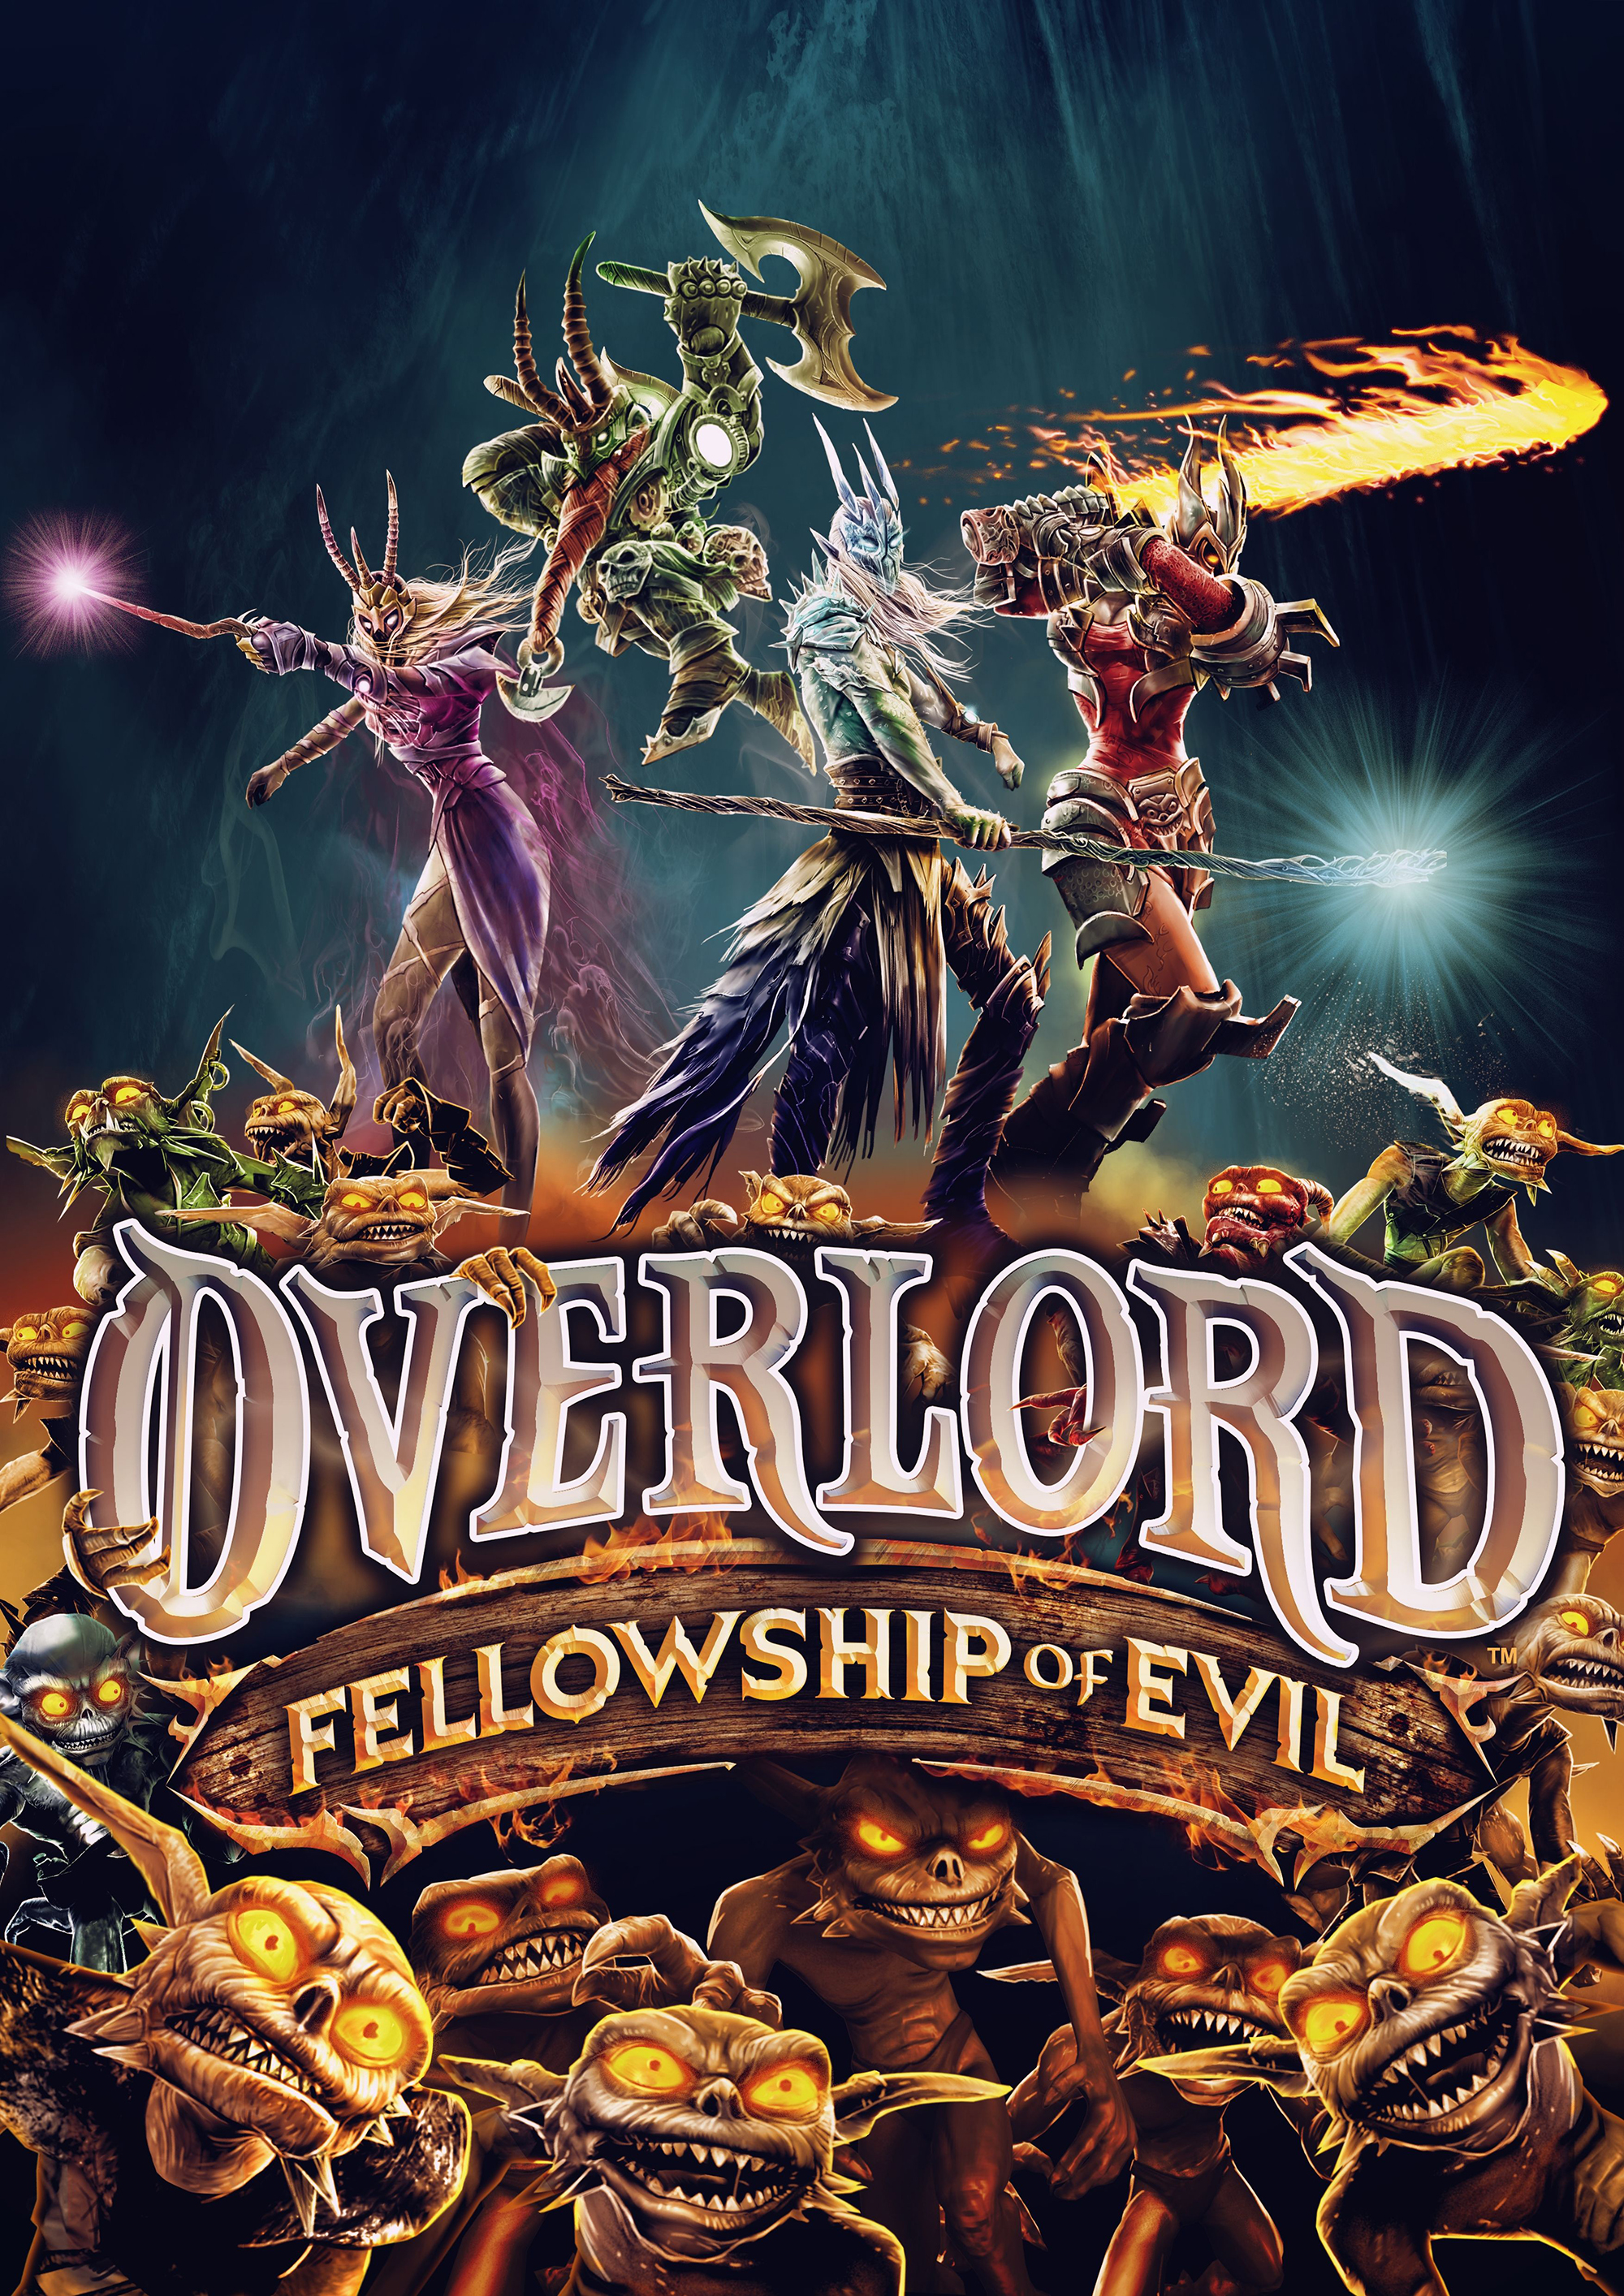 Overlord Fellowship of Evil 230415 1